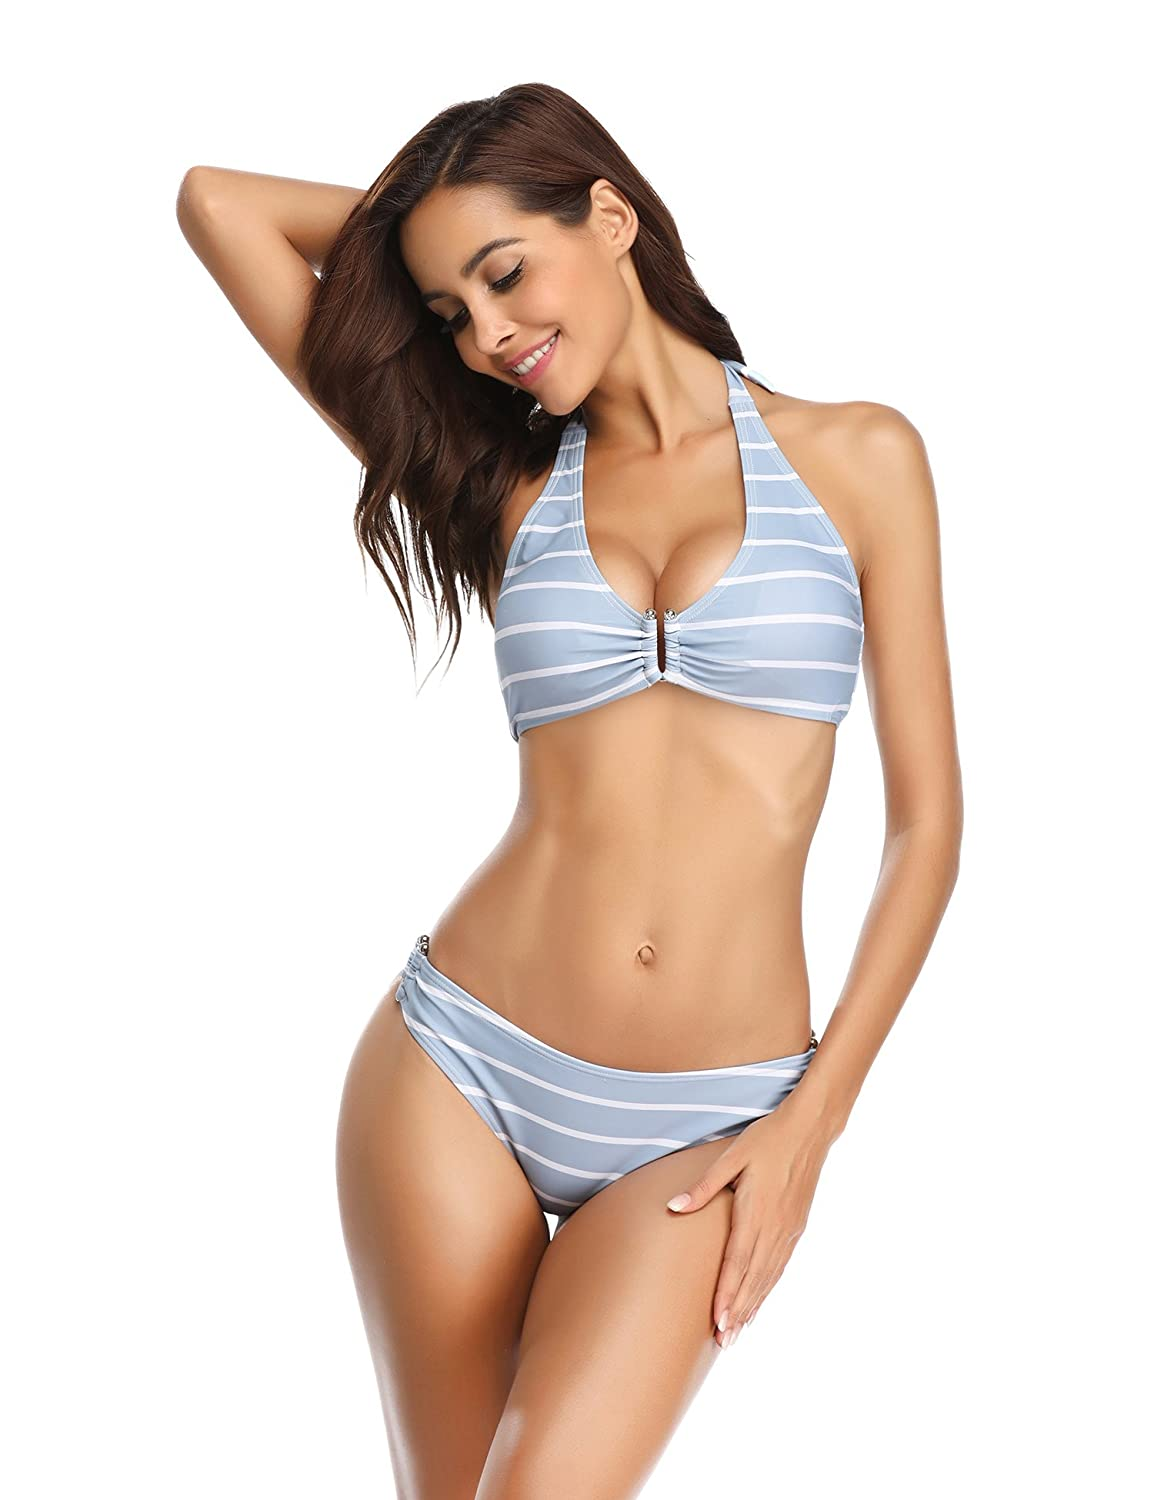 29d107a86a Size Runs Small: S (US 2) M (US 4) L (US 6) XL (US 8) 2XL (US 10) Swimwear  returned without the hygienic liner is non-refundable, if don't know how ...